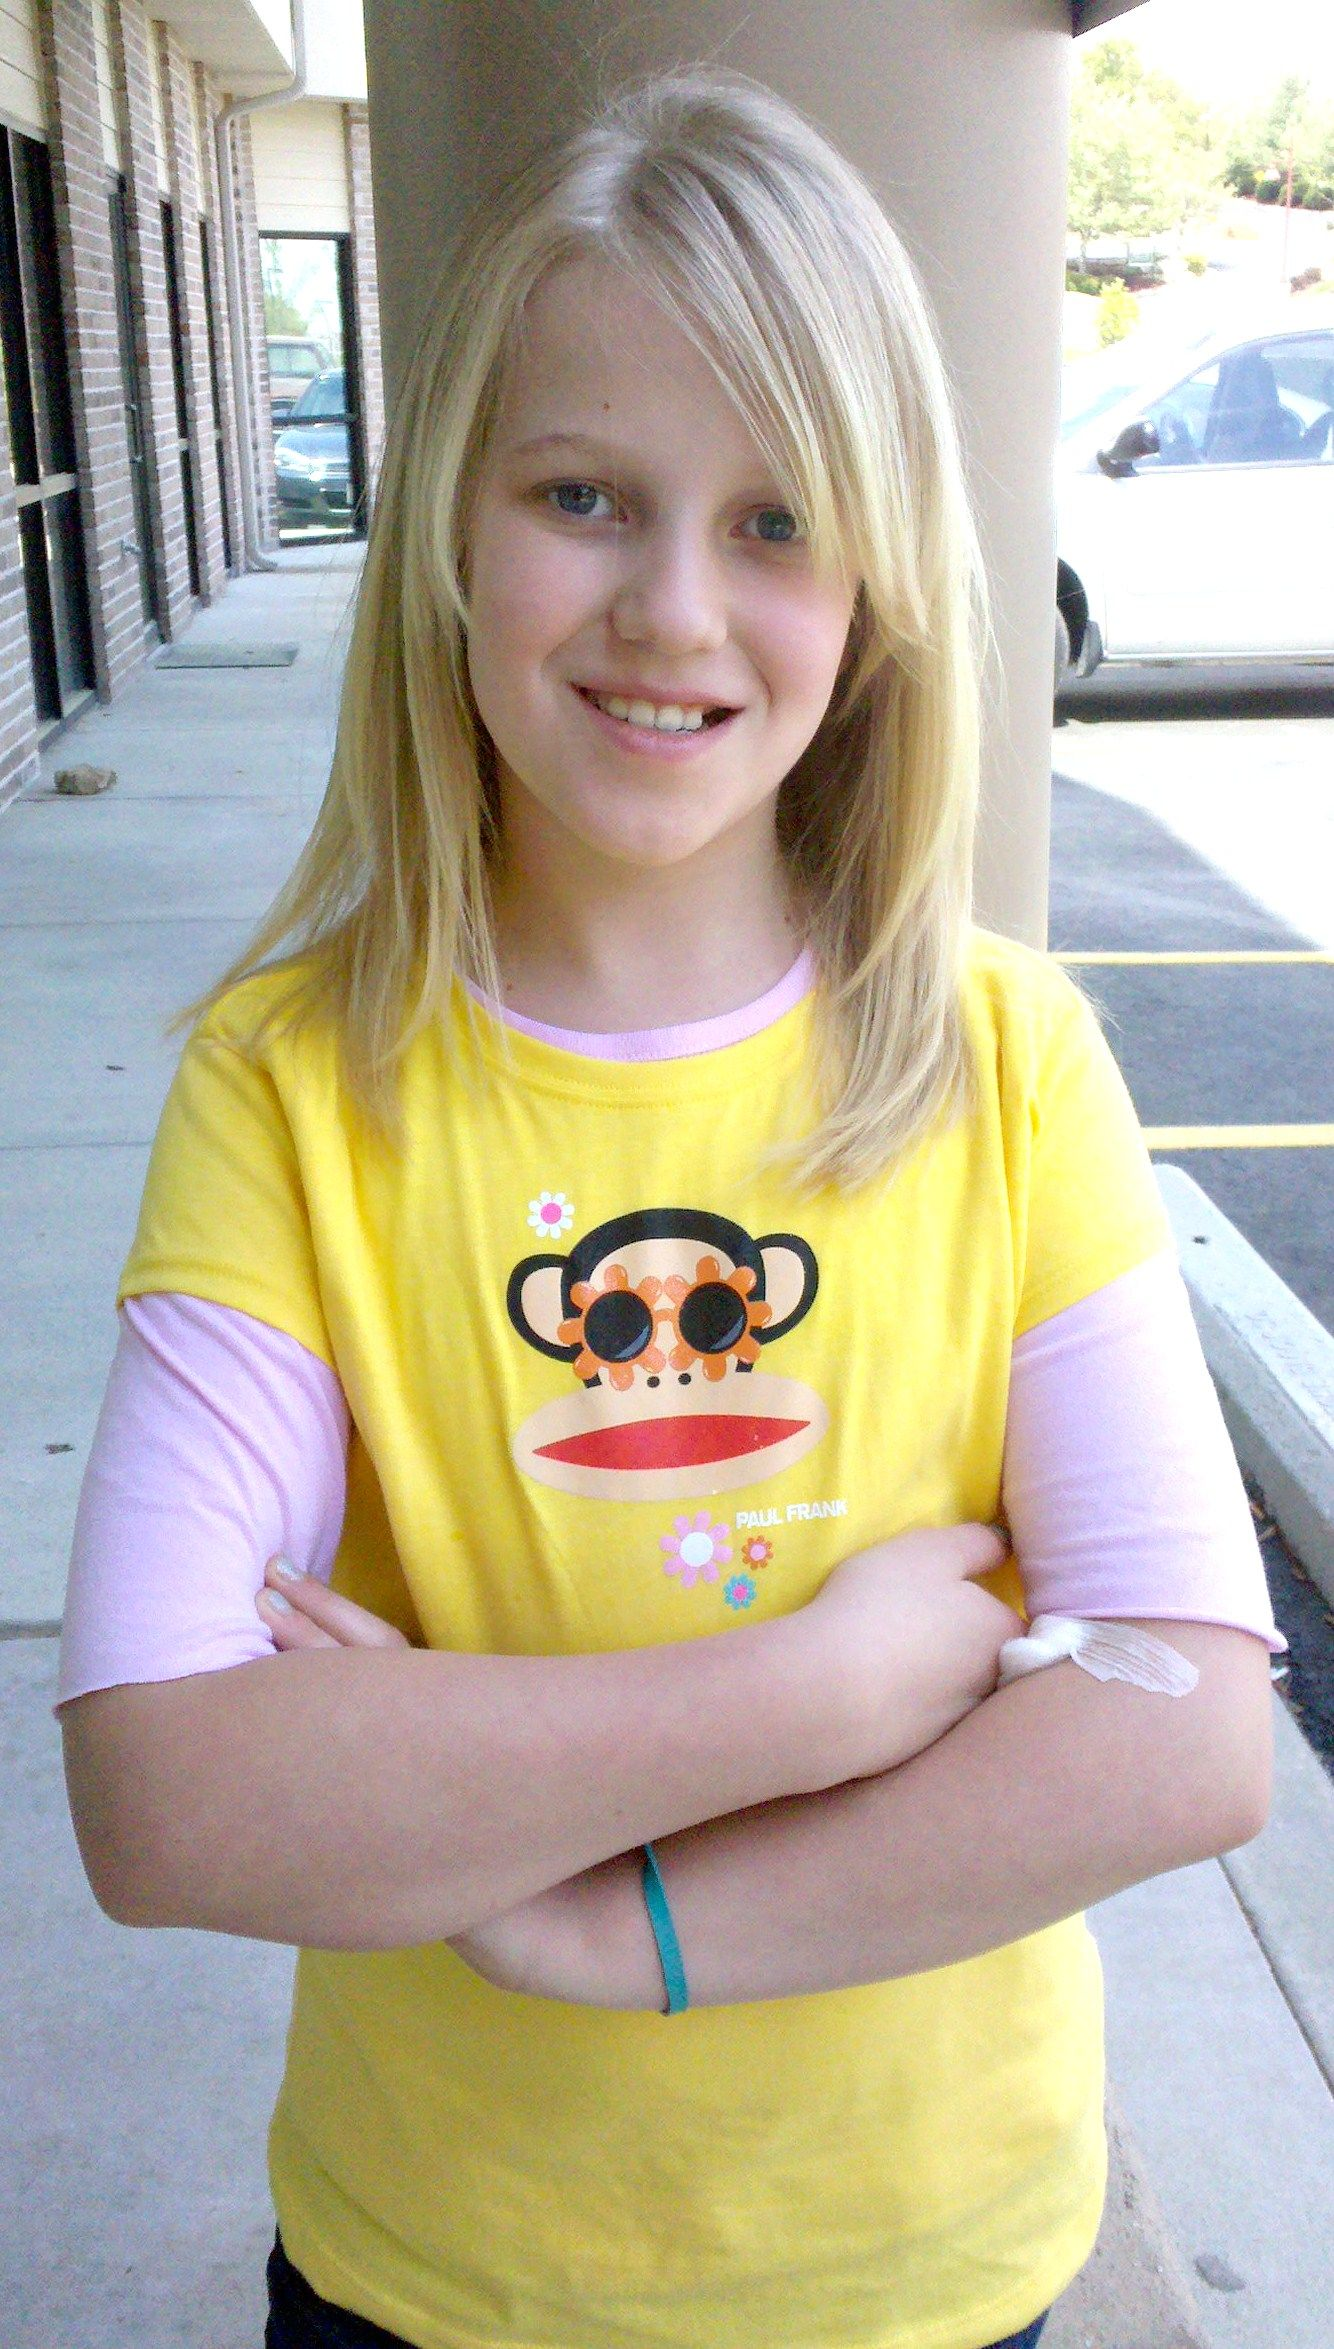 images of haircuts for 10 year old girl - google search | vision